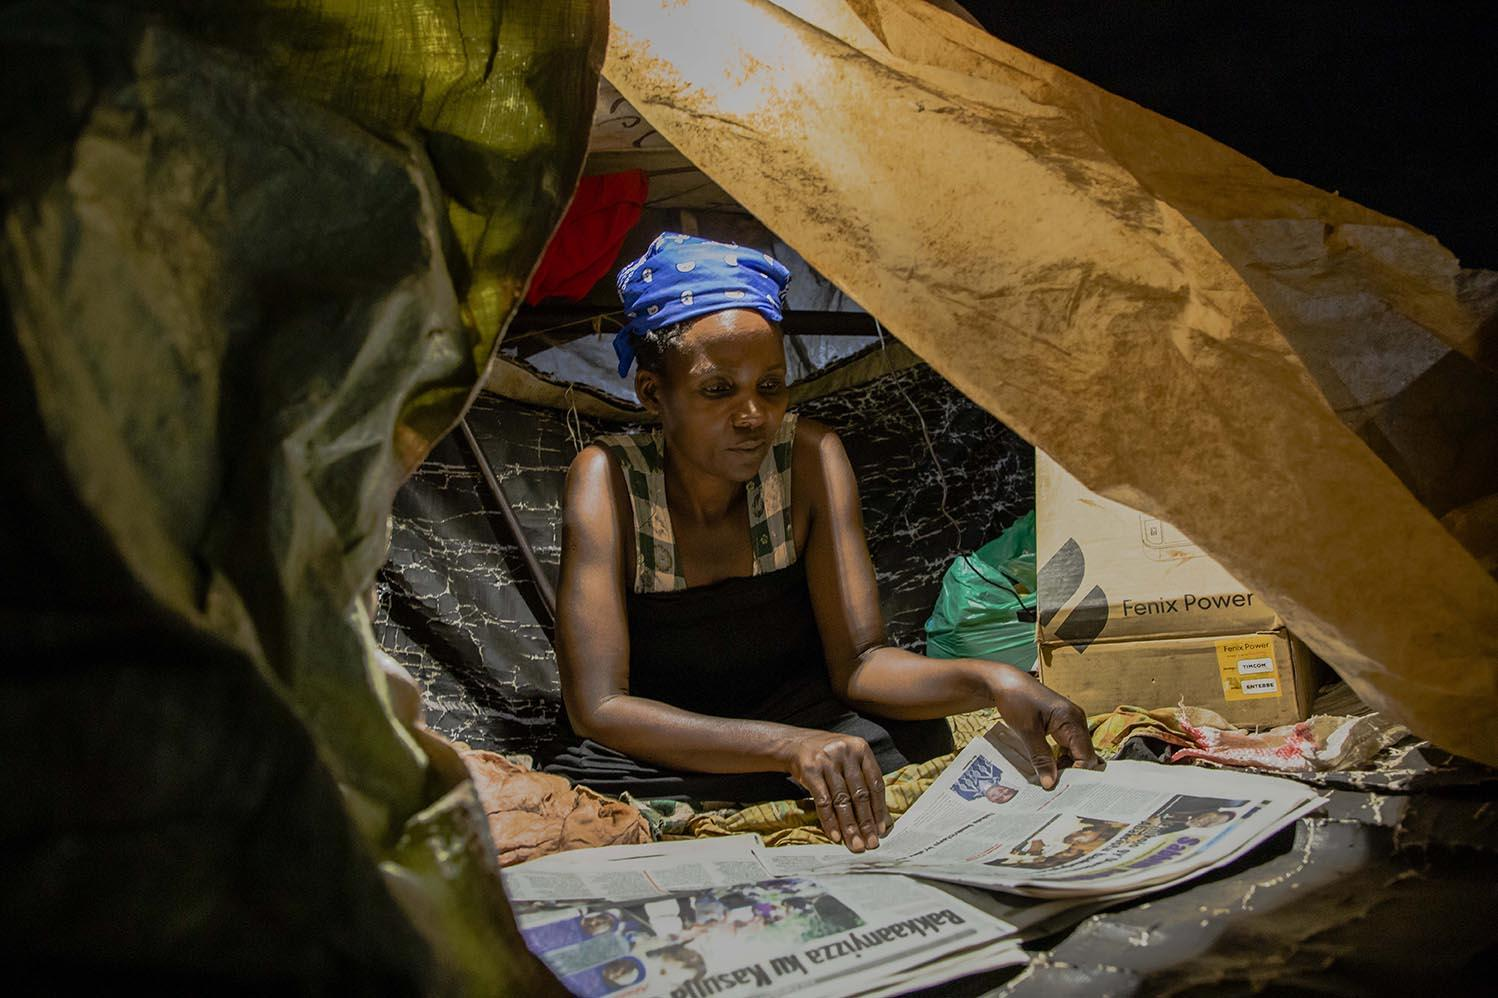 Gertrude (45), a Nakawa Market vendor, reads a newspaper in a self-made tent where she spends her nights on 9 April 2020. She decided to stay at the market and sell vegetables so she can continue sending money to her five children back at home.